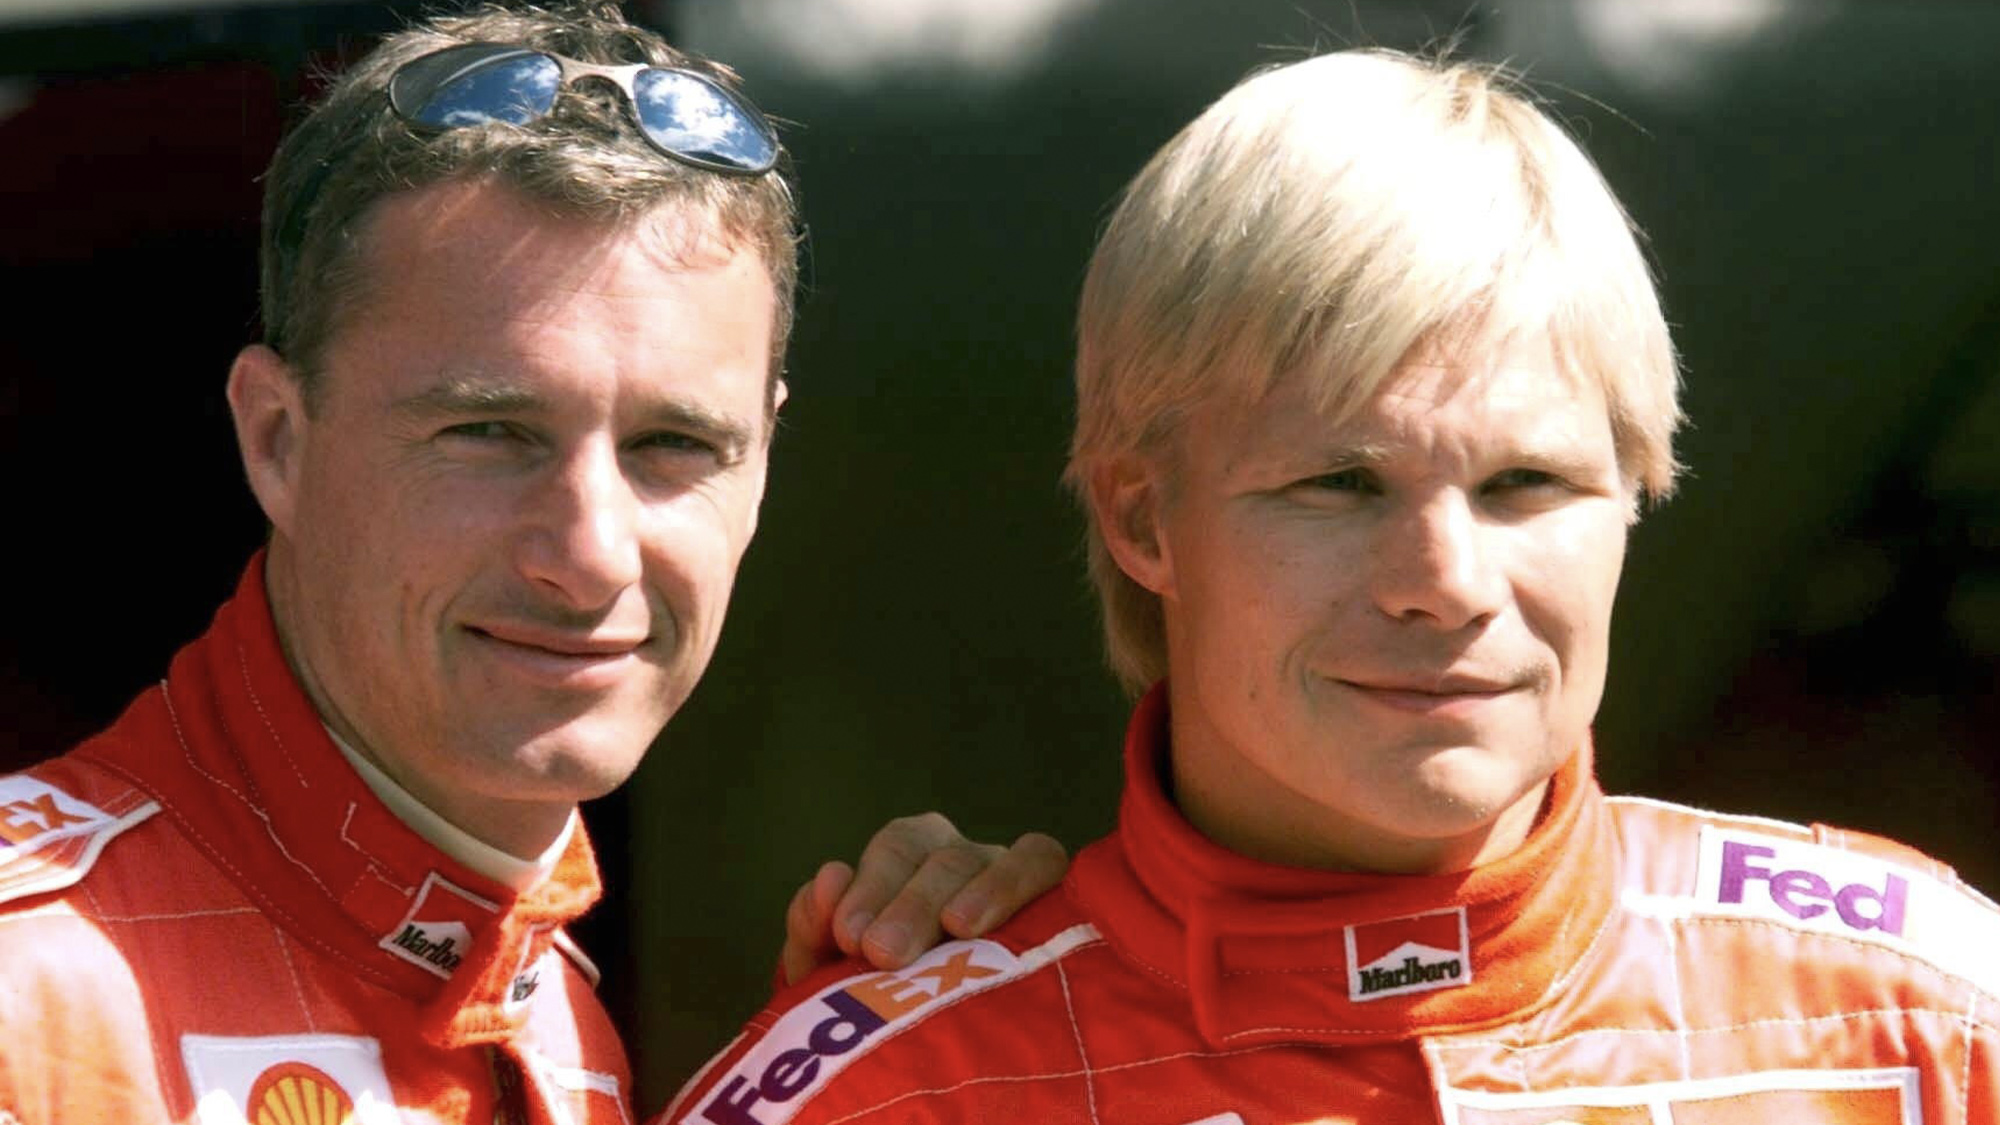 Eddie Irvine and Mika Salo at the 1999 Austrian Grand Prix